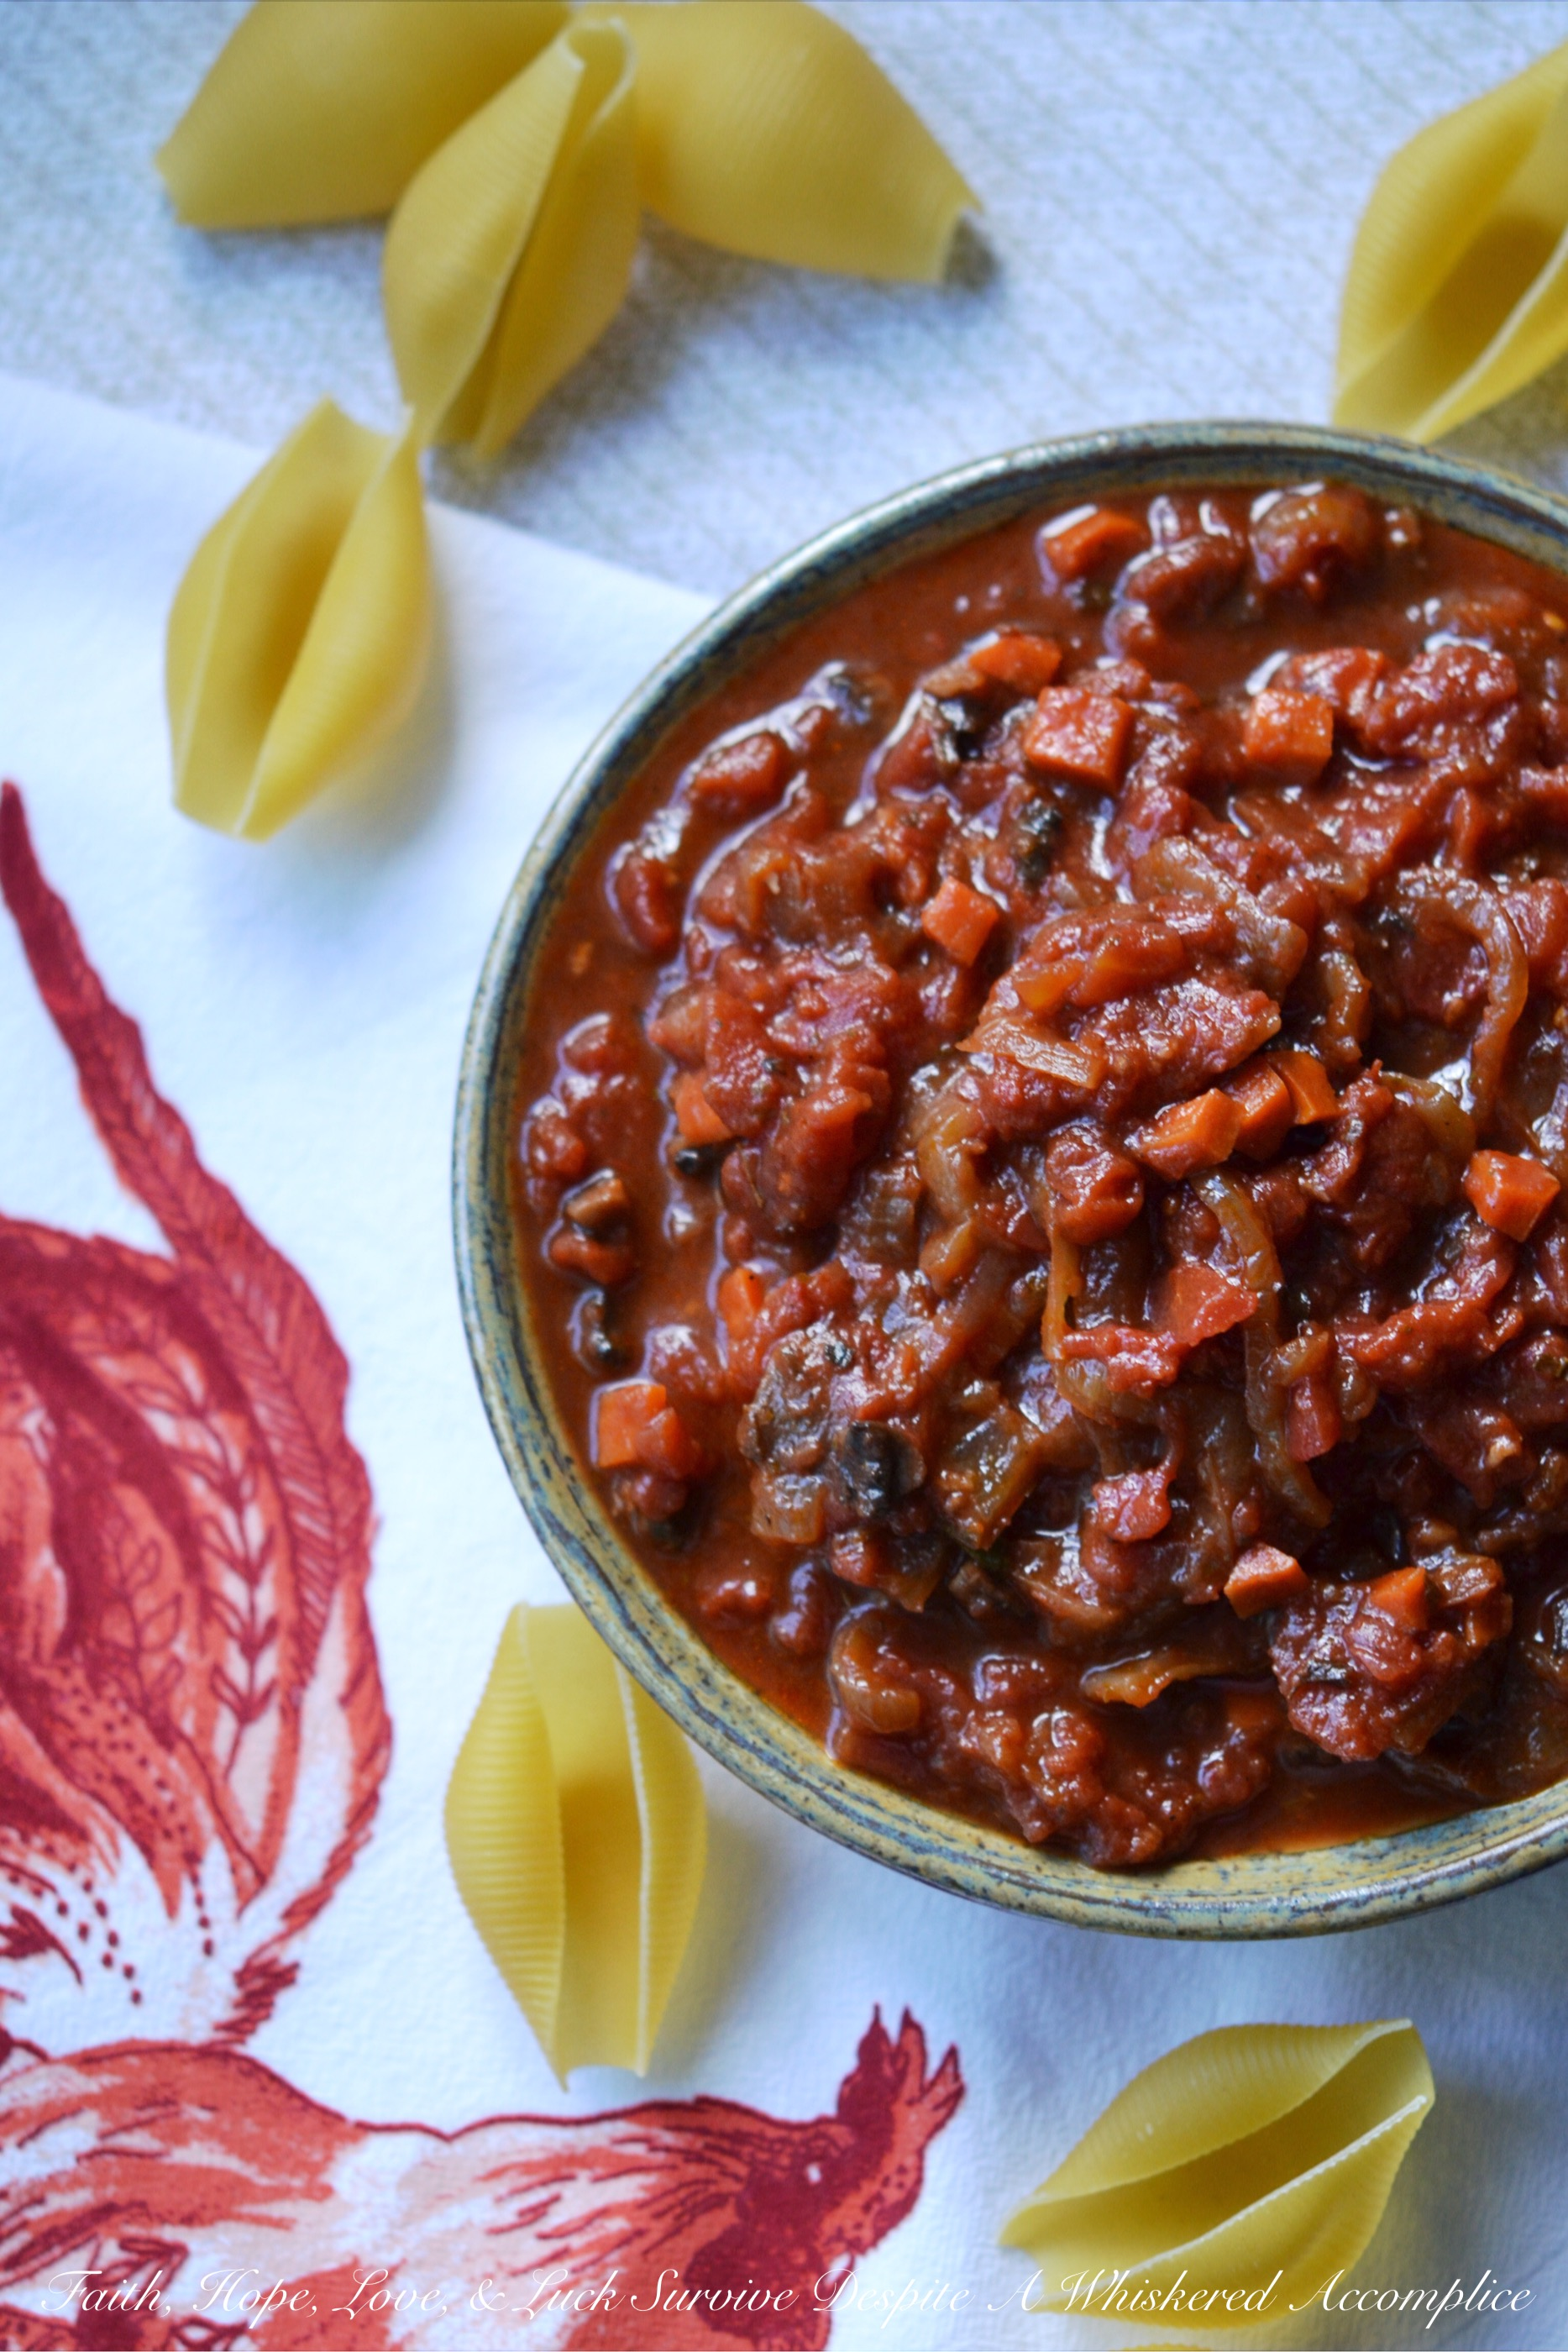 Game Day Overnight Crockpot Tomato Sauce